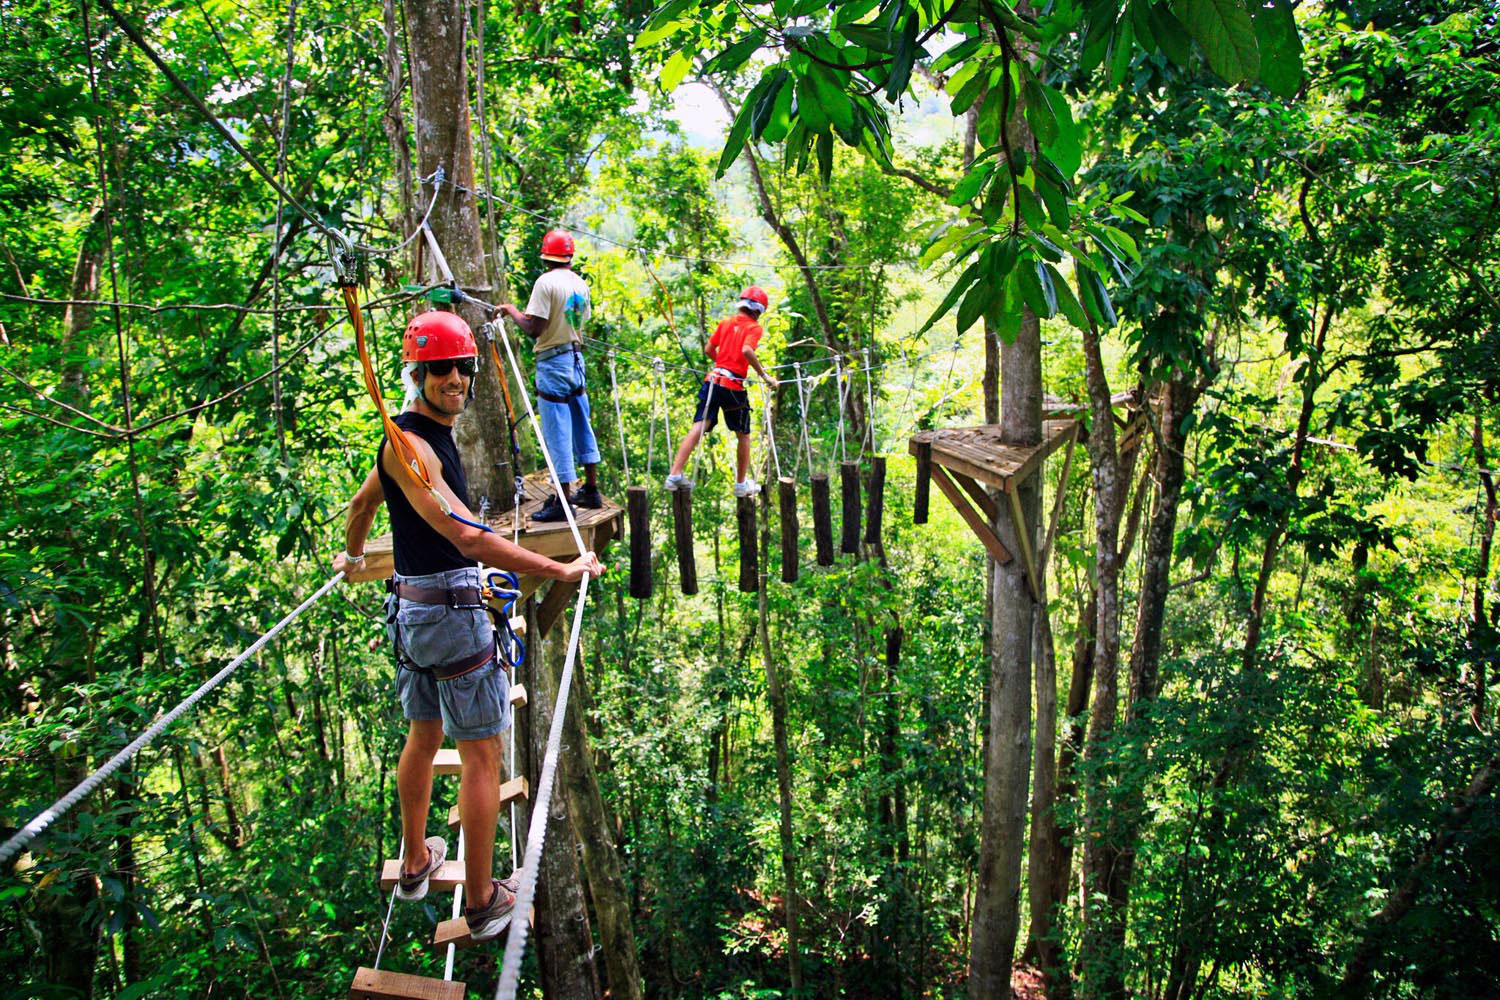 The canopy walkway near Dennery offers a bird's eye view of the forest. Photo courtesy St Lucia Tourism Authority